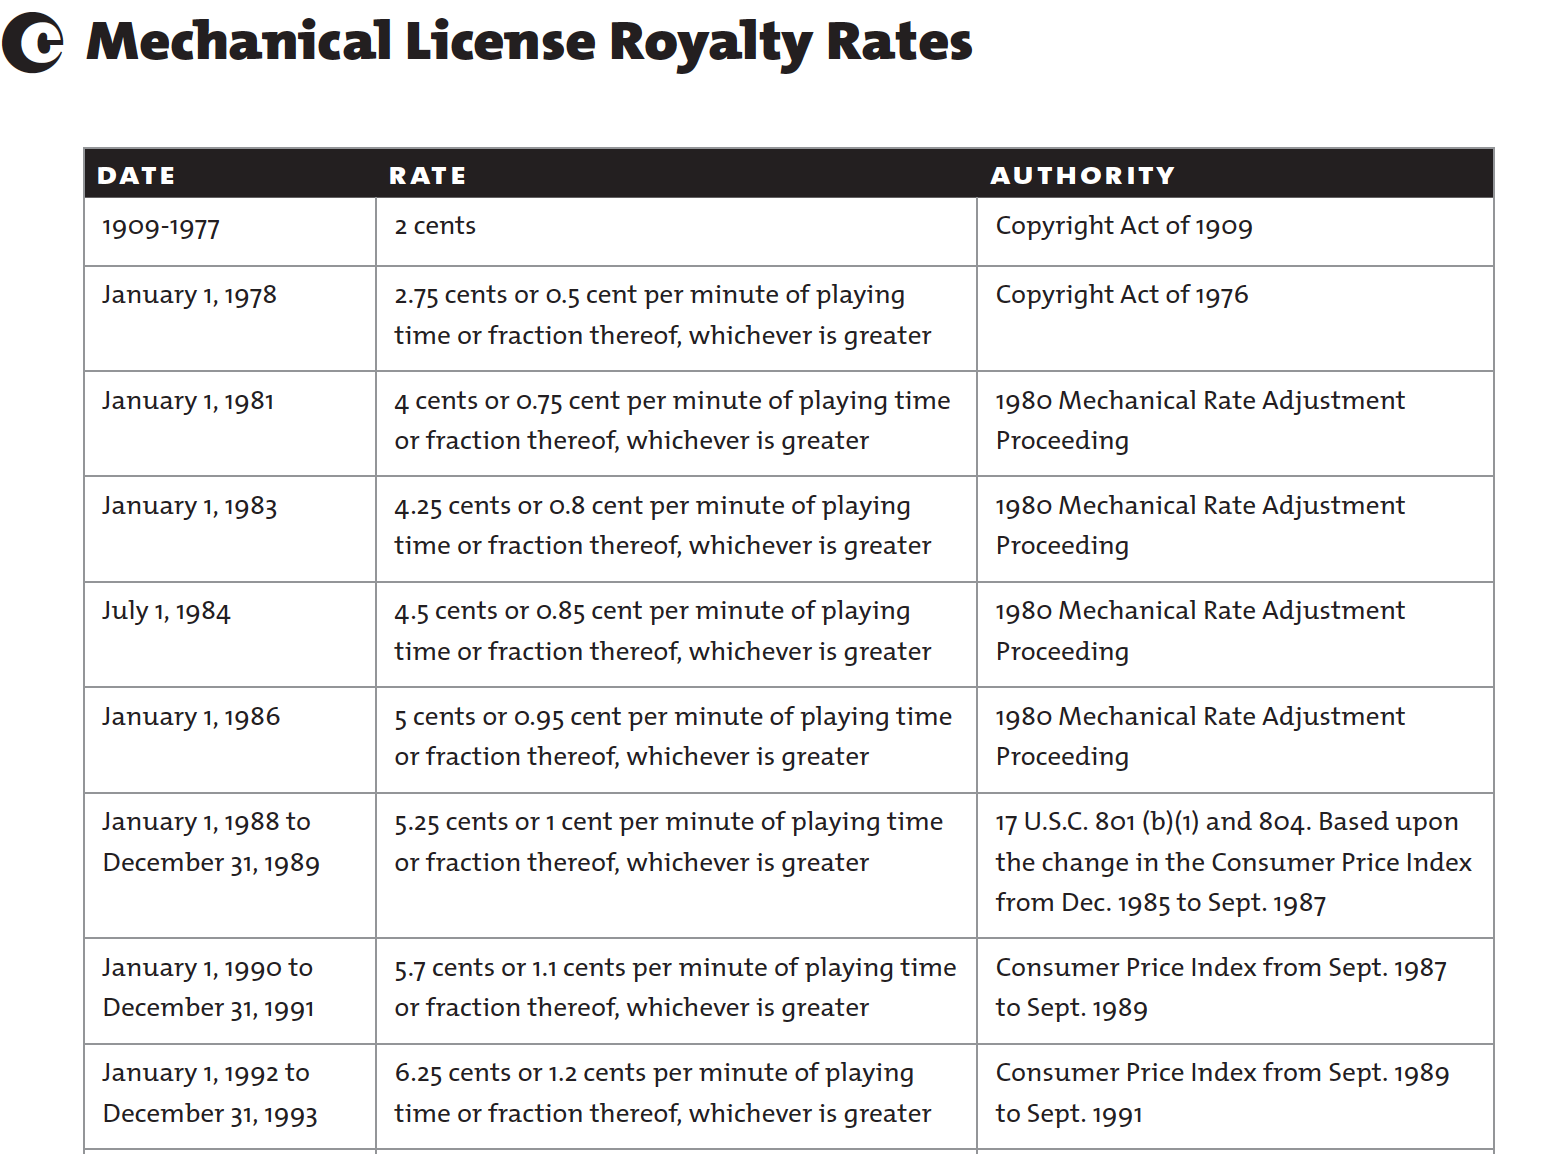 Mechanical License Royalty Rates 1